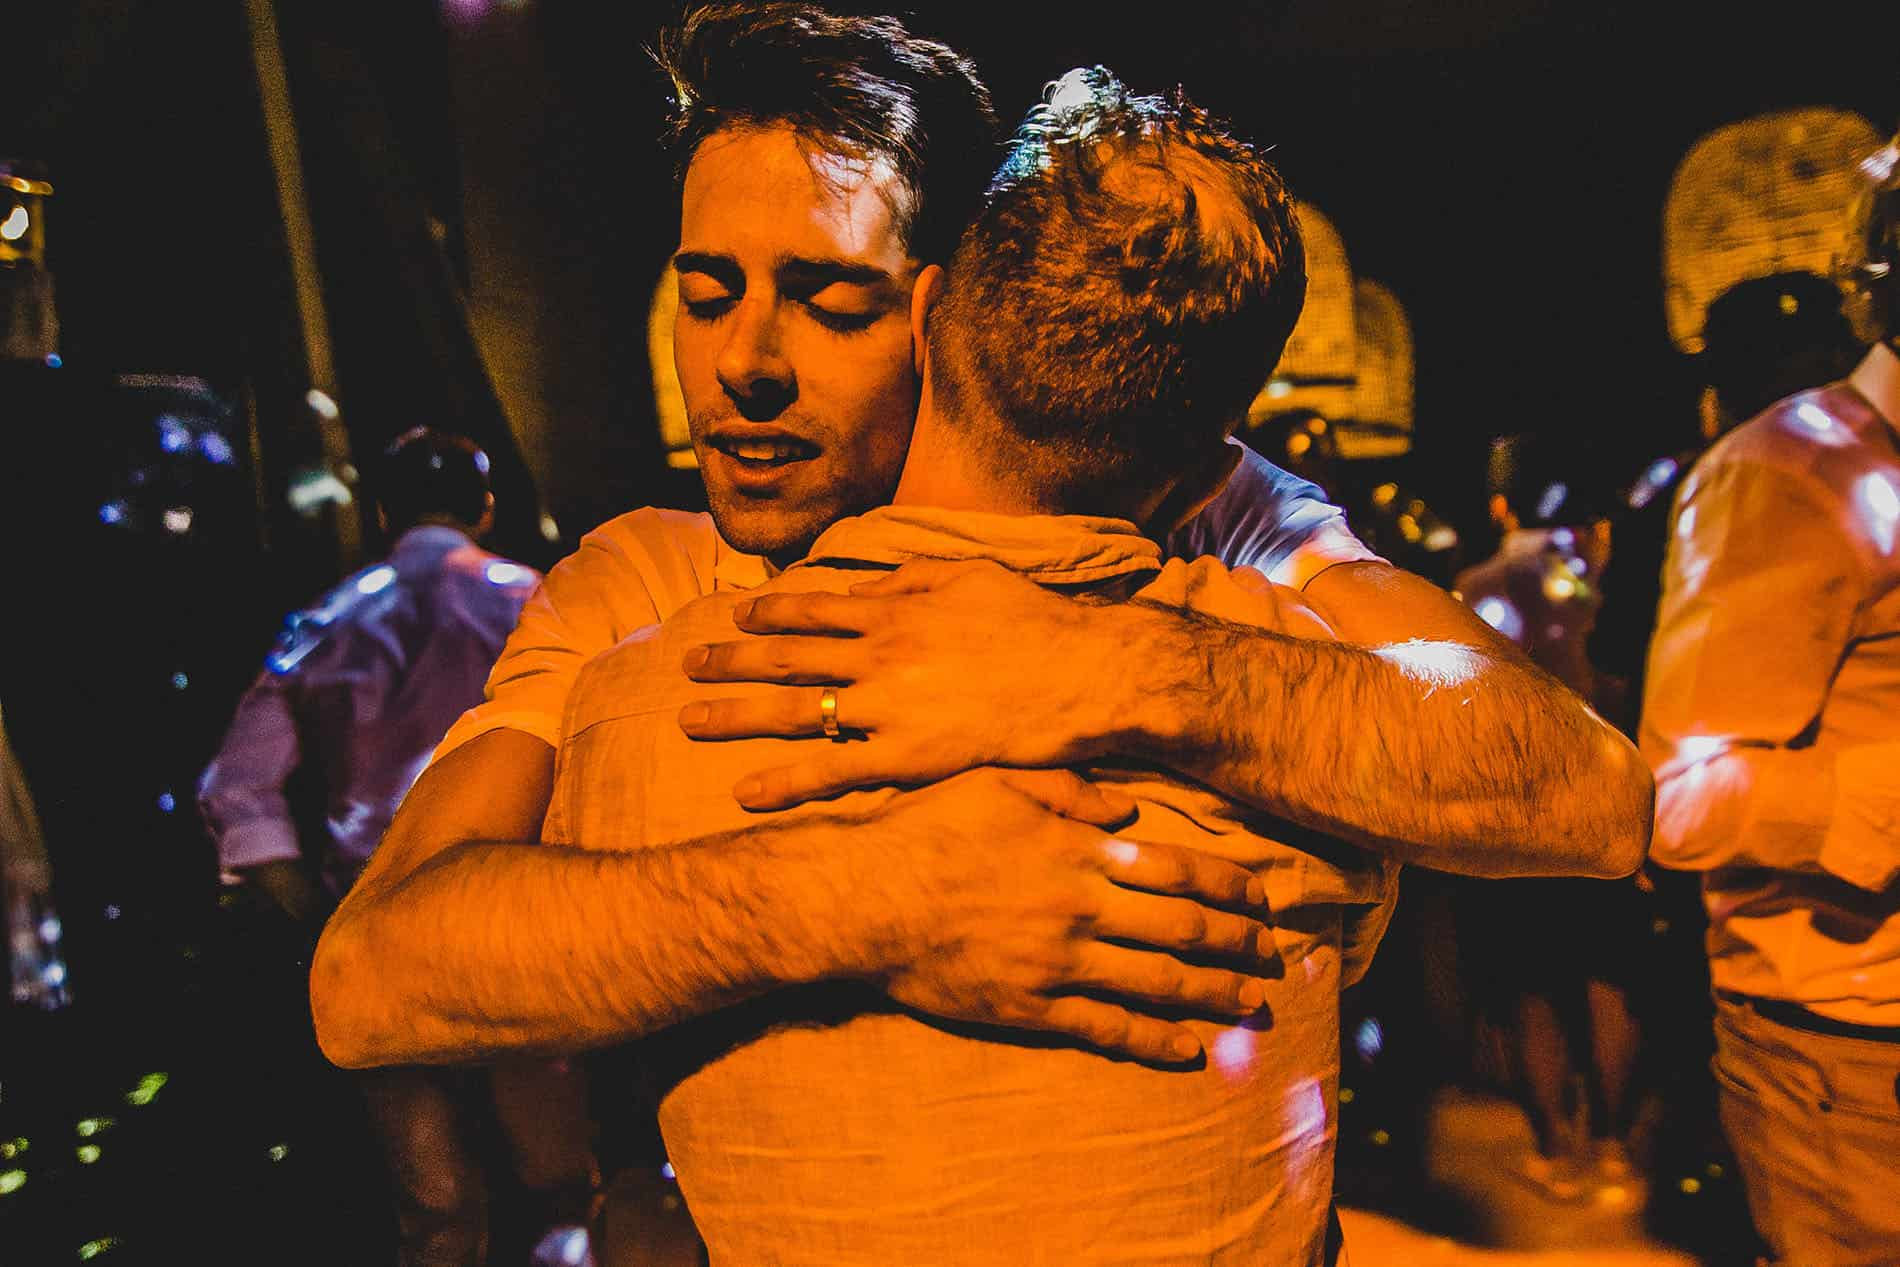 grooms hug each other with an orange light